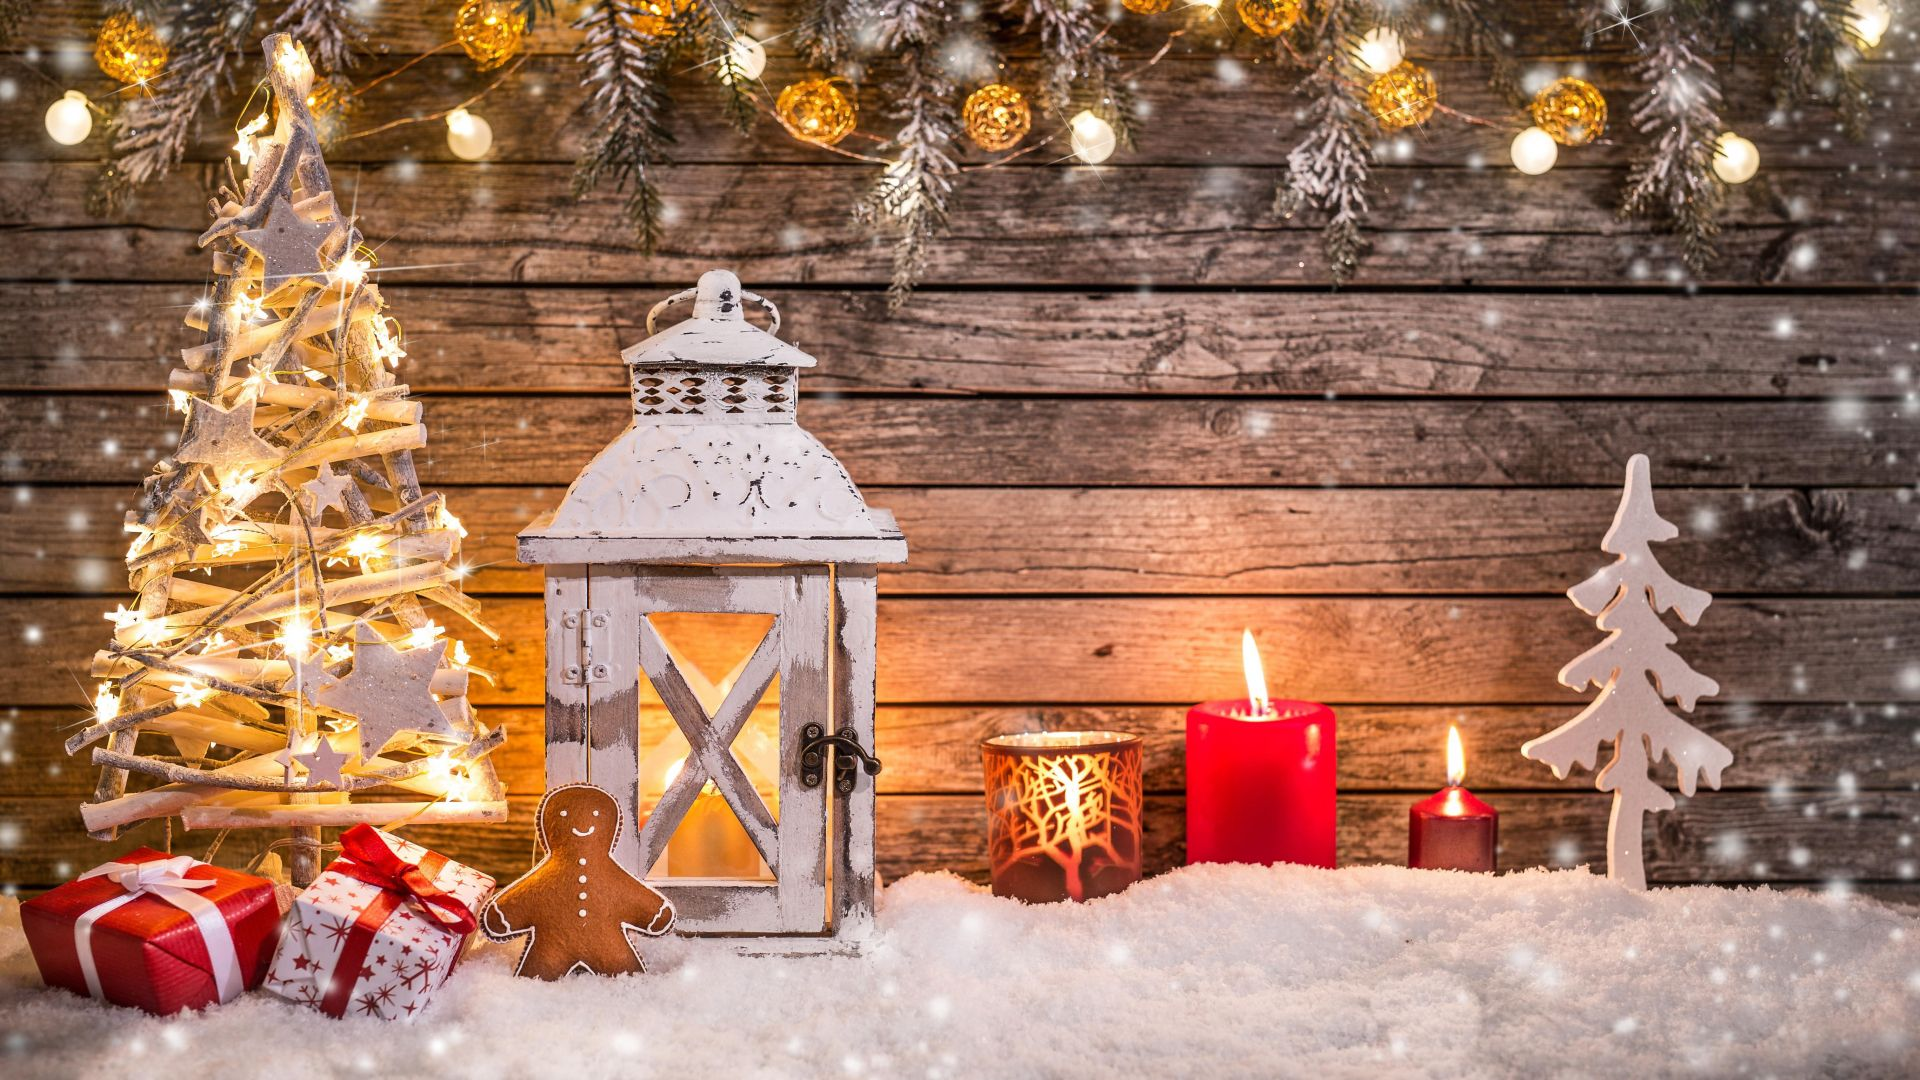 Christmas, New Year, toys, fir-tree, lamp, decorations, snow, 5k (horizontal)